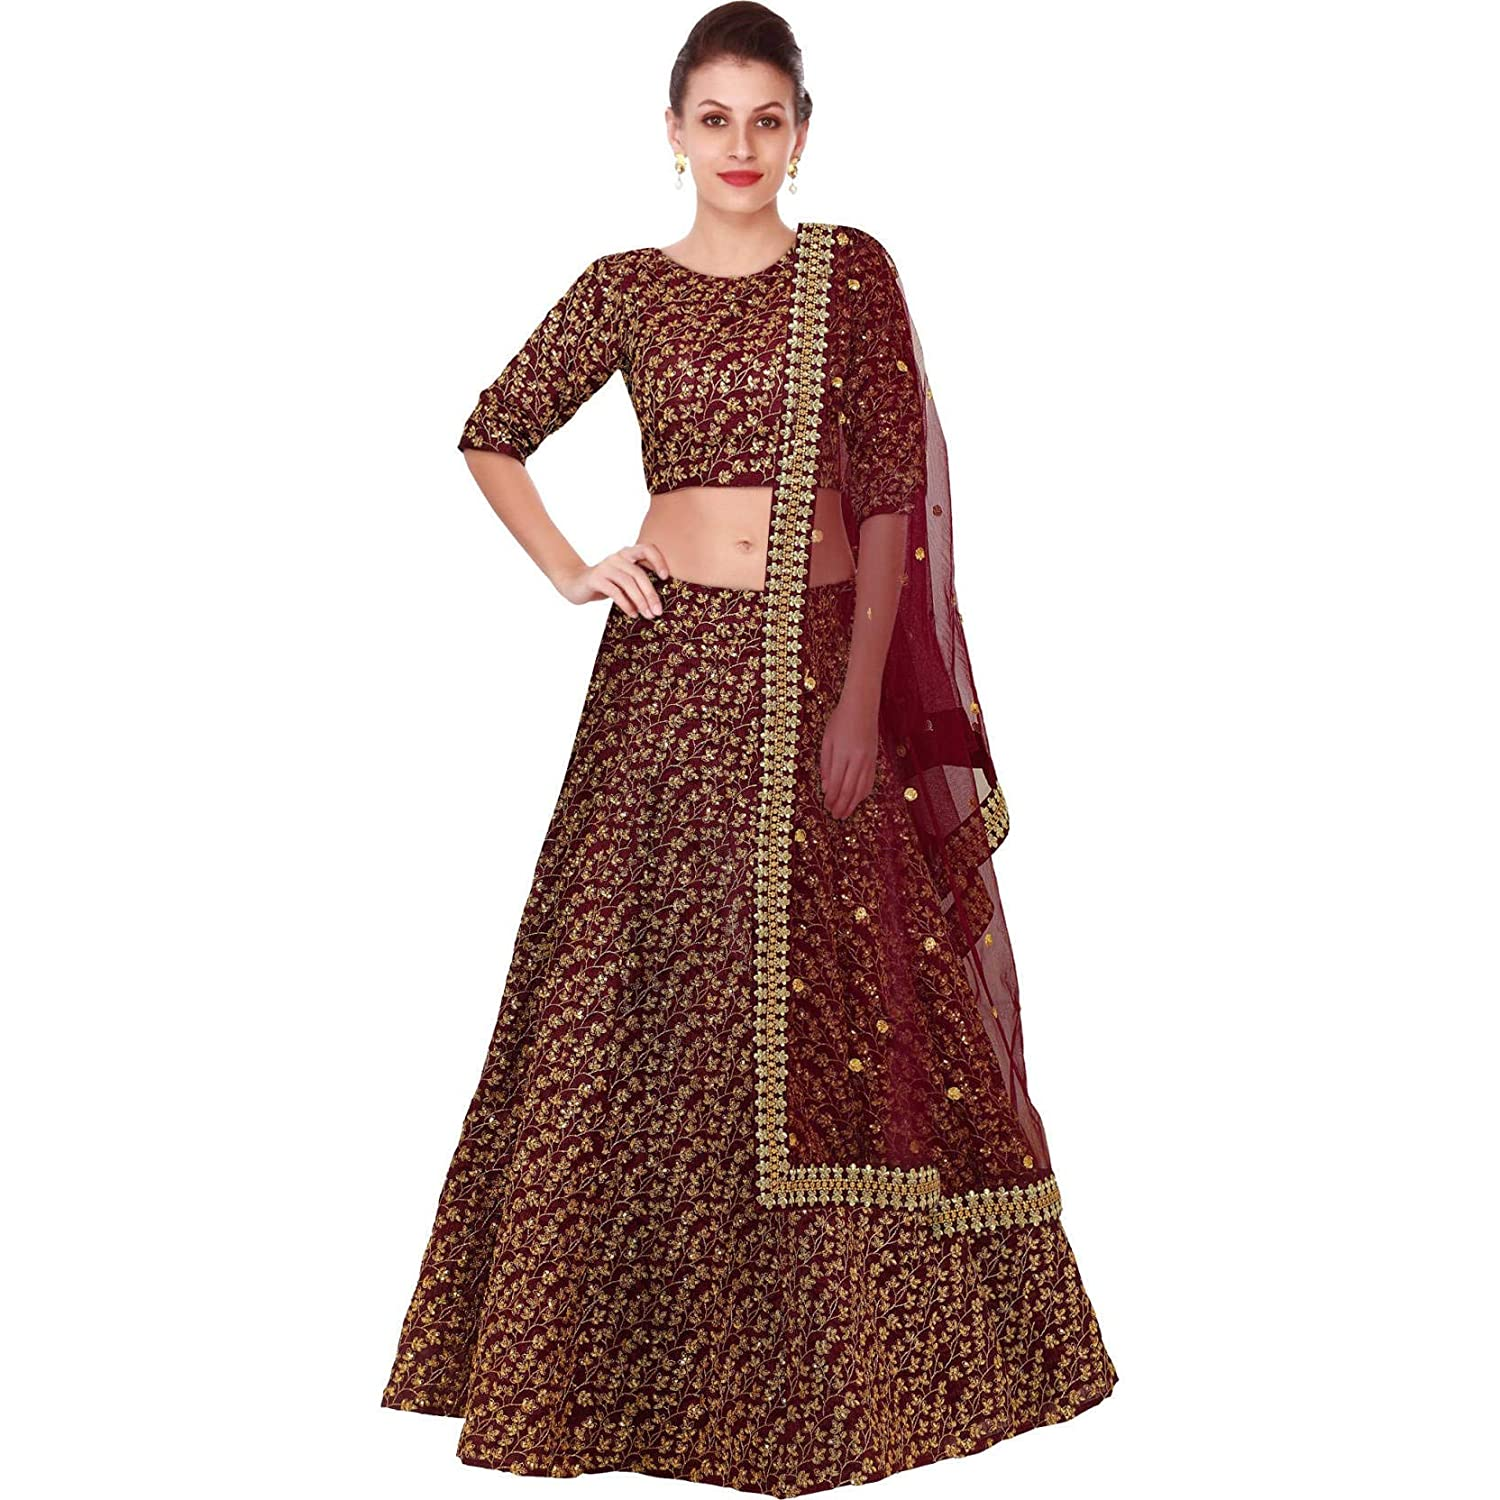 107de7306d FABPIXEL Women's Heavy Sequins Embroidered Raw Silk Semi-Stitched Lehenga  Choli Set (FABP7015, Free Size): Amazon.in: Clothing & Accessories